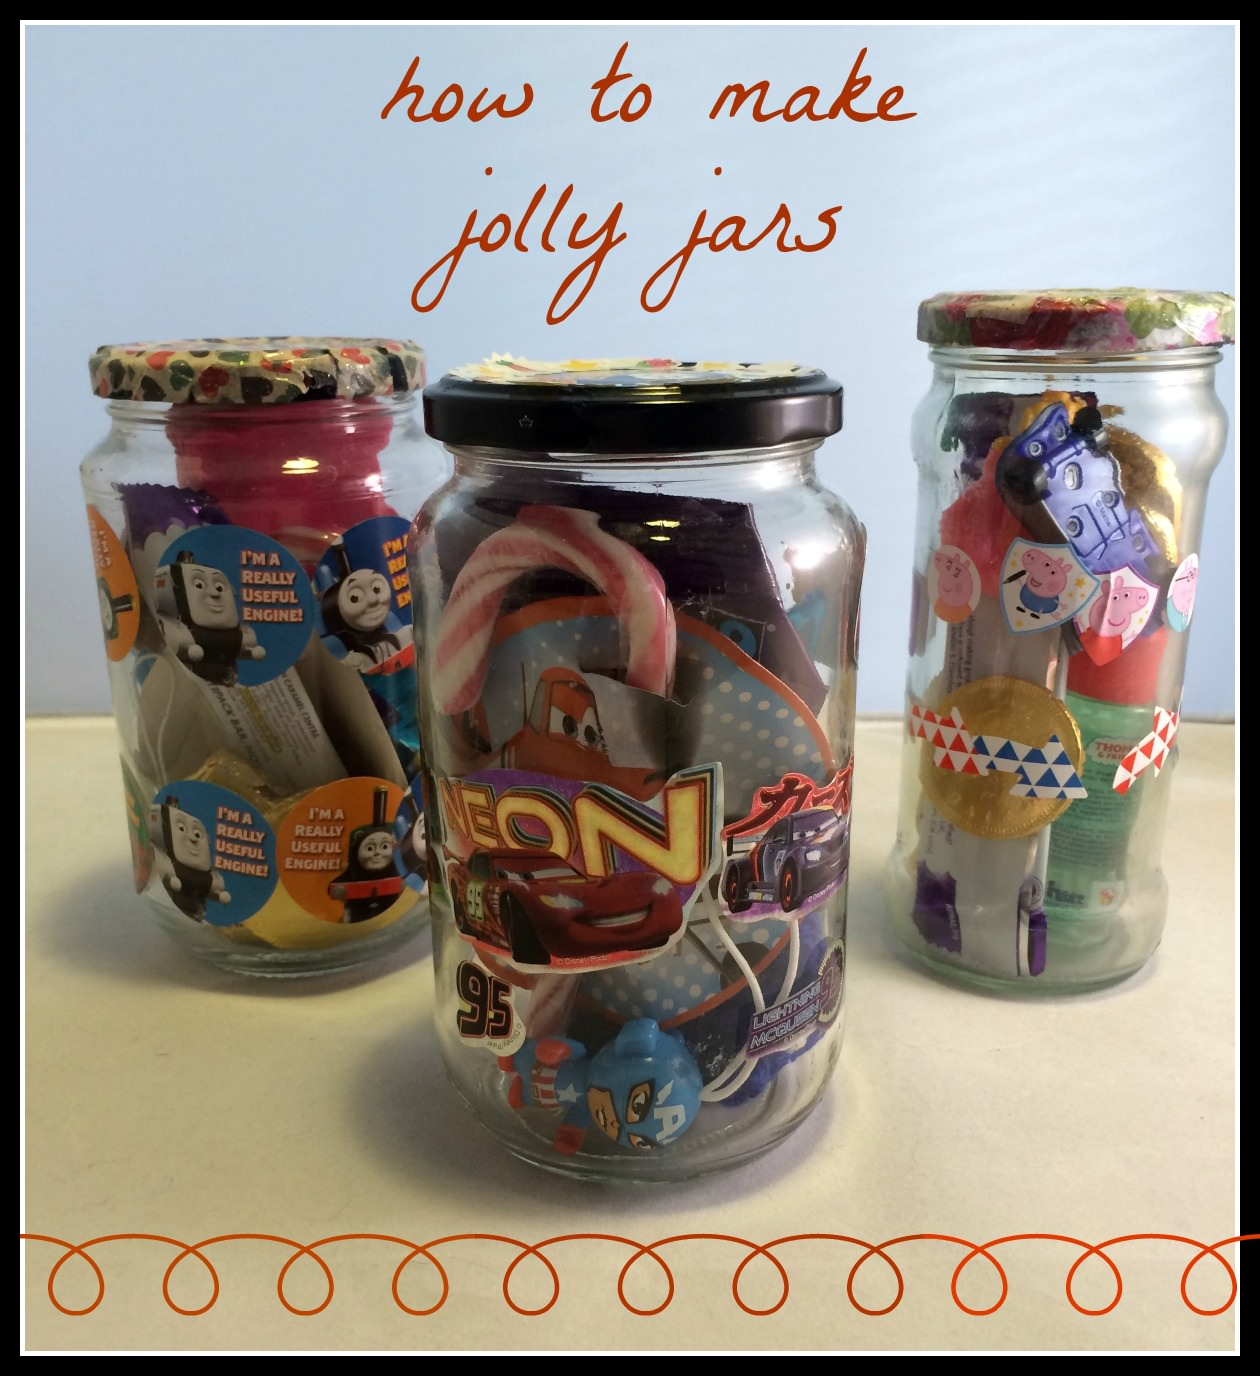 How To Make A Jolly Jar The Gingerbread House Co Uk